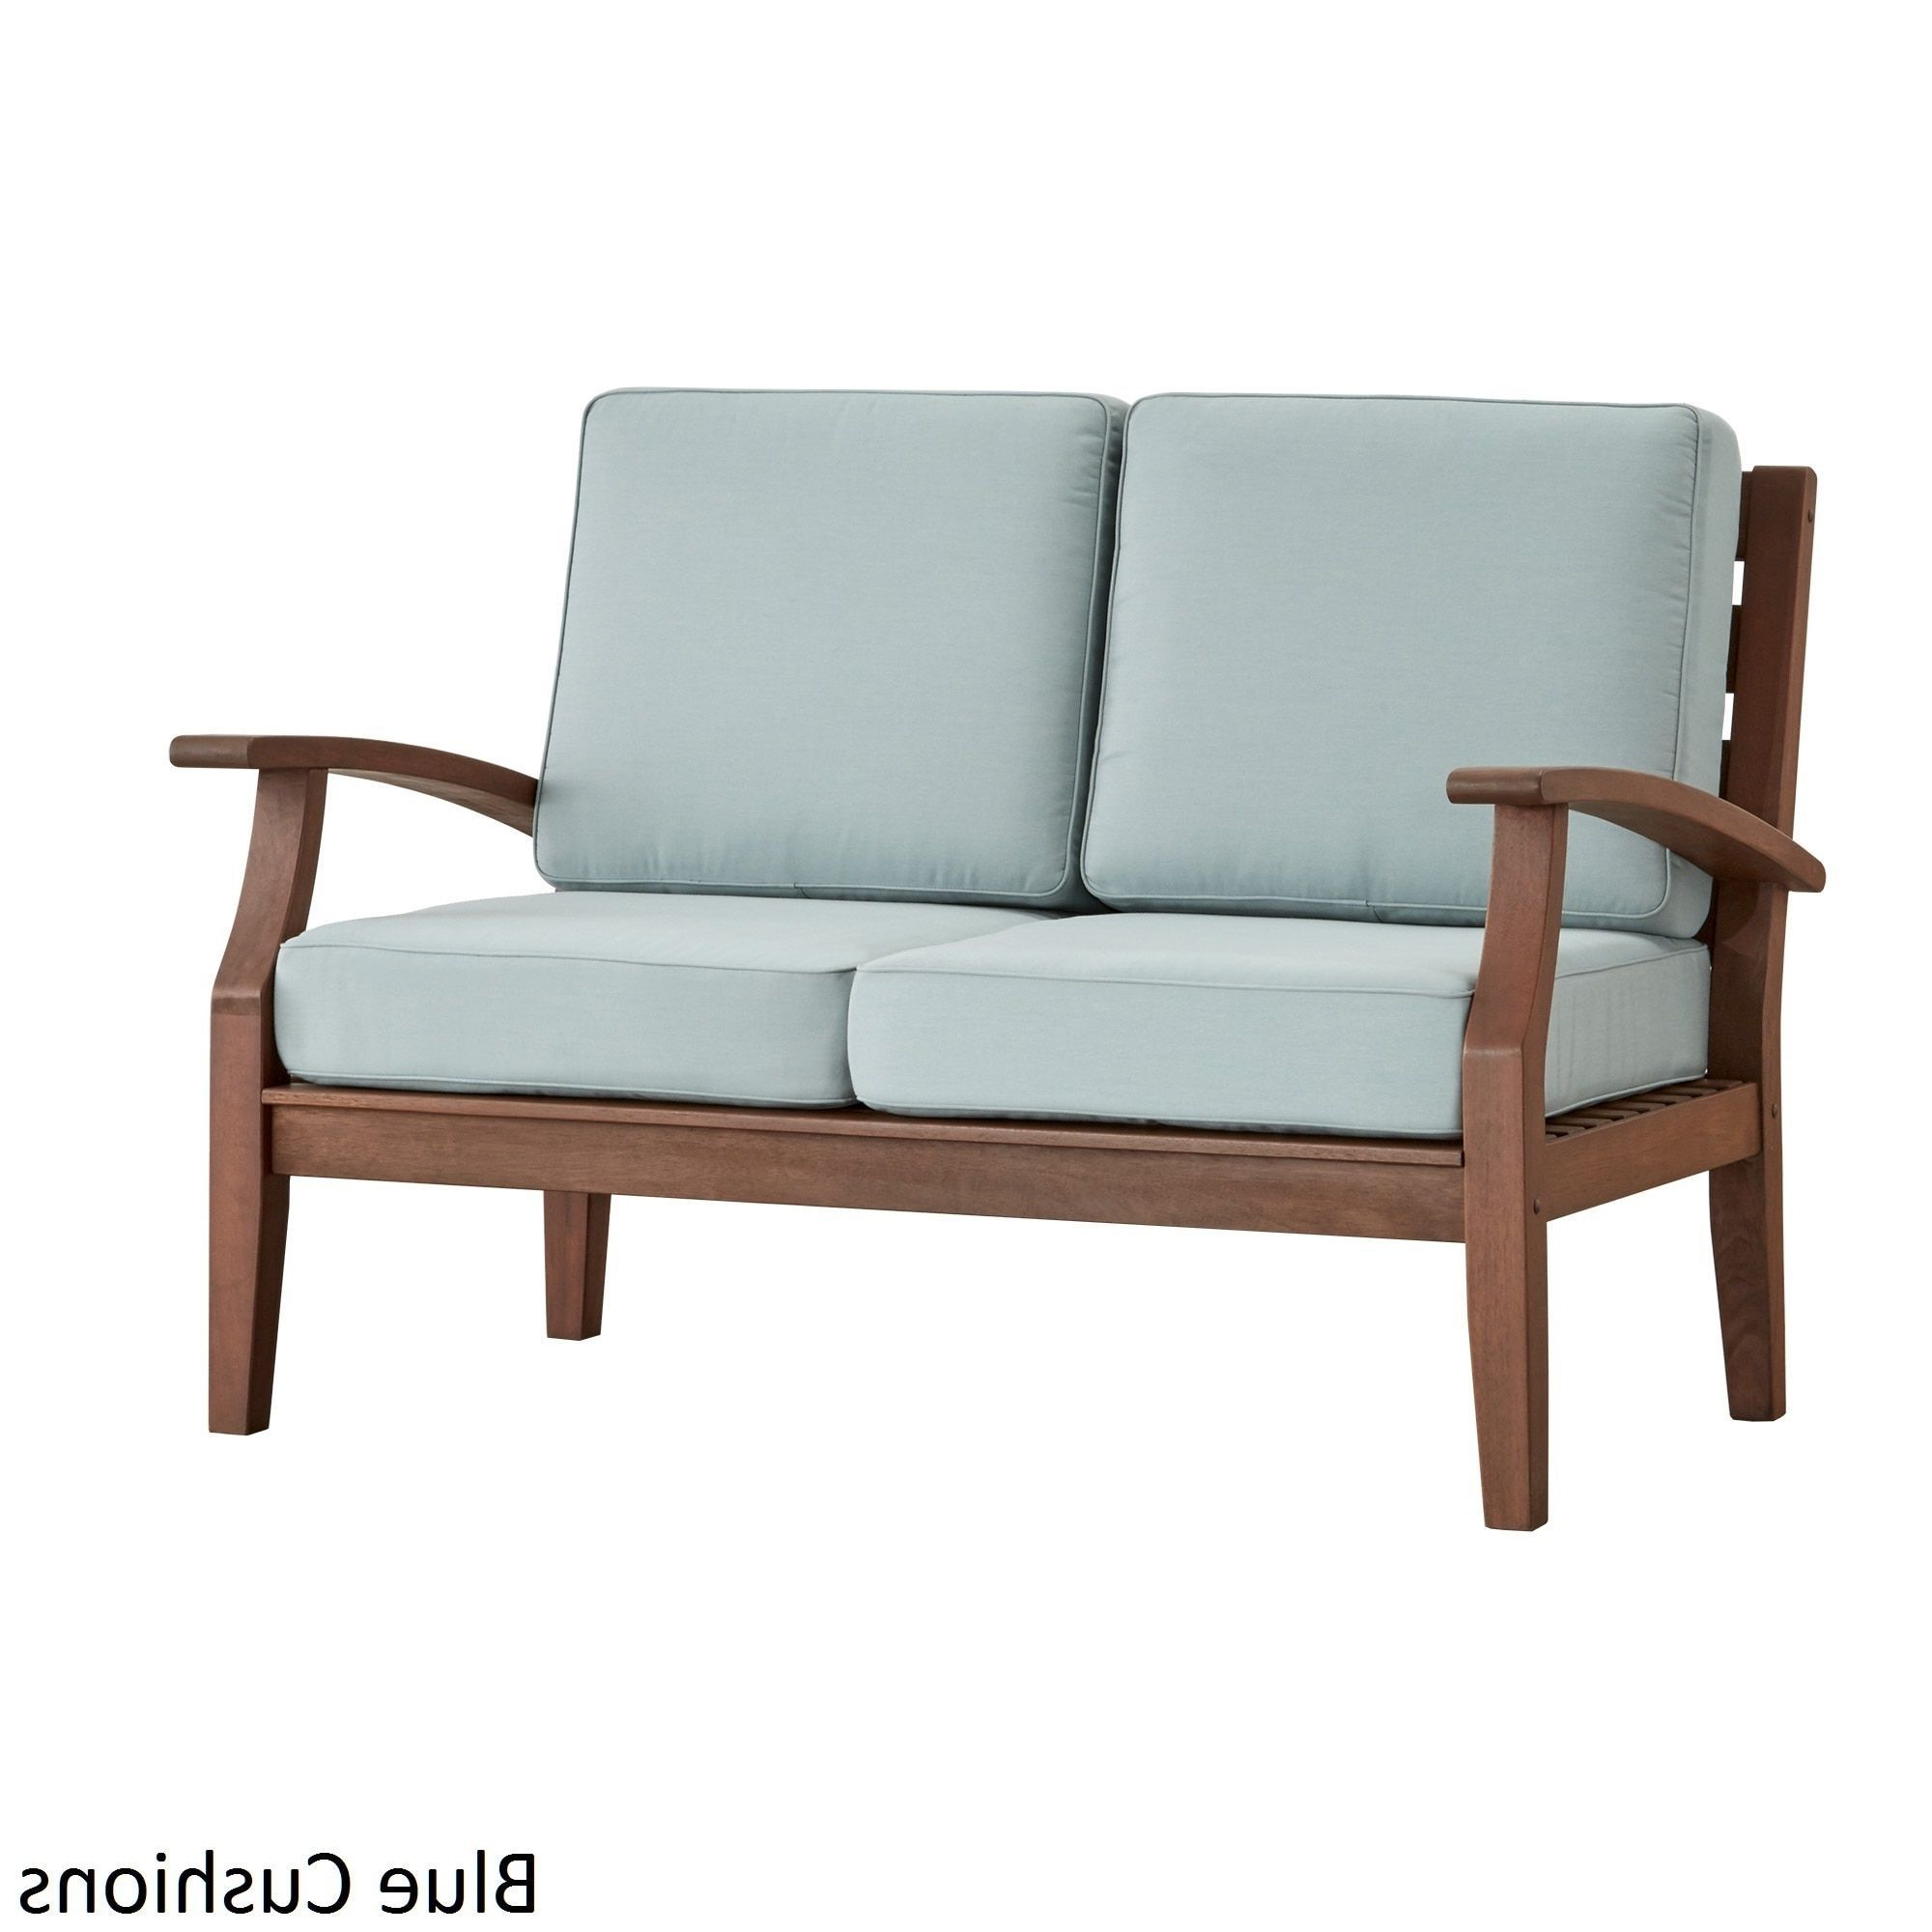 Calvin Patio Loveseats With Cushions Regarding Most Up To Date Yasawa Brown Modern Outdoor Cushioned Wood Loveseat Inspire (View 14 of 20)